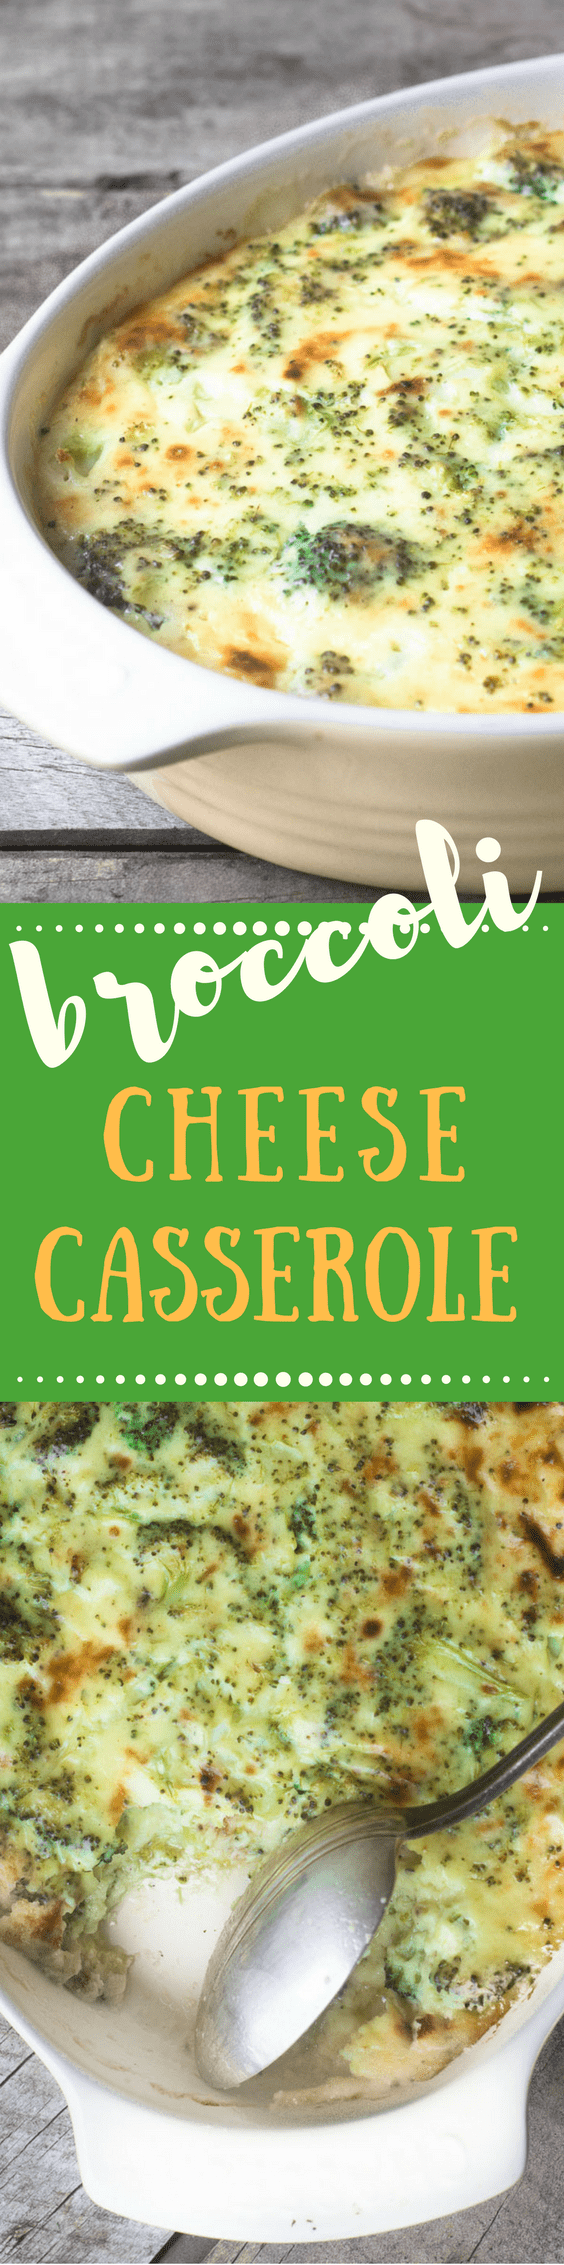 Broccoli Cheese Casserole is a classic side dish that gets a bad rap because generations of moms have resorted to canned soup, frozen broccoli, and mayo.  This version is closer to a French gratin, with everything (easily!) made from scratch. #casserole #broccoli #broccolicheese #comfortfood #sidedish #Thanksgivingsidedish #broccoligratin